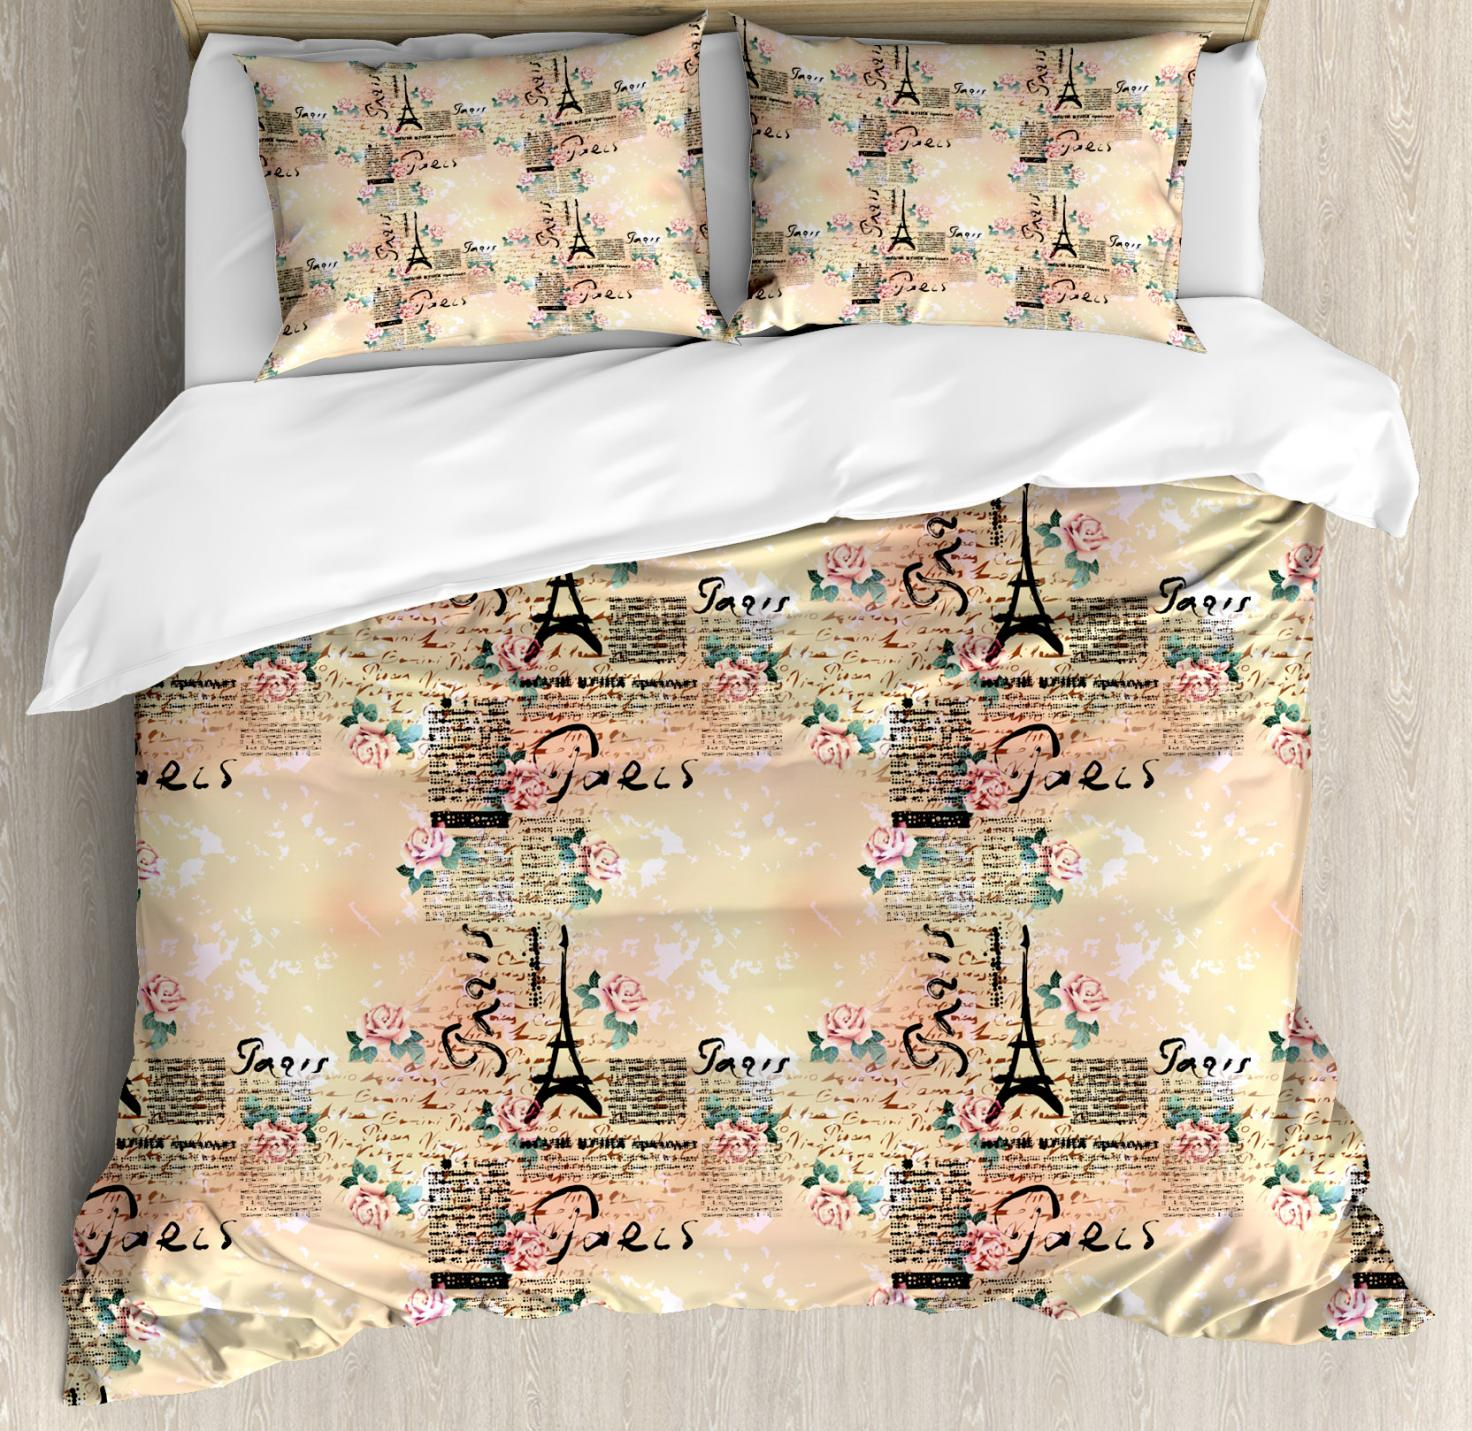 Modern Duvet Modern Duvet Cover Set French Paris Themed Lettering With Floral Leaves Details Artwork Decorative Bedding Set With Pillow Shams Blue Black And